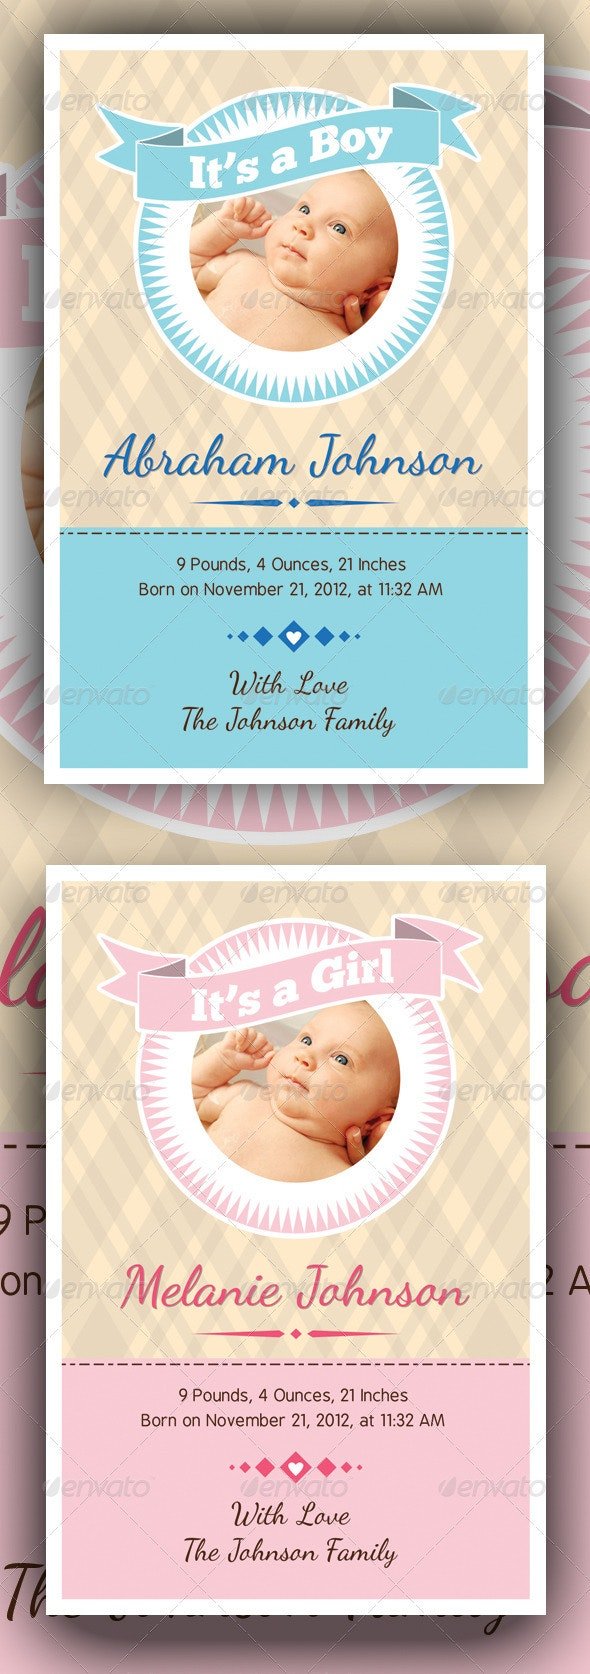 Baby Announcement Cards v3 - Family Cards & Invites